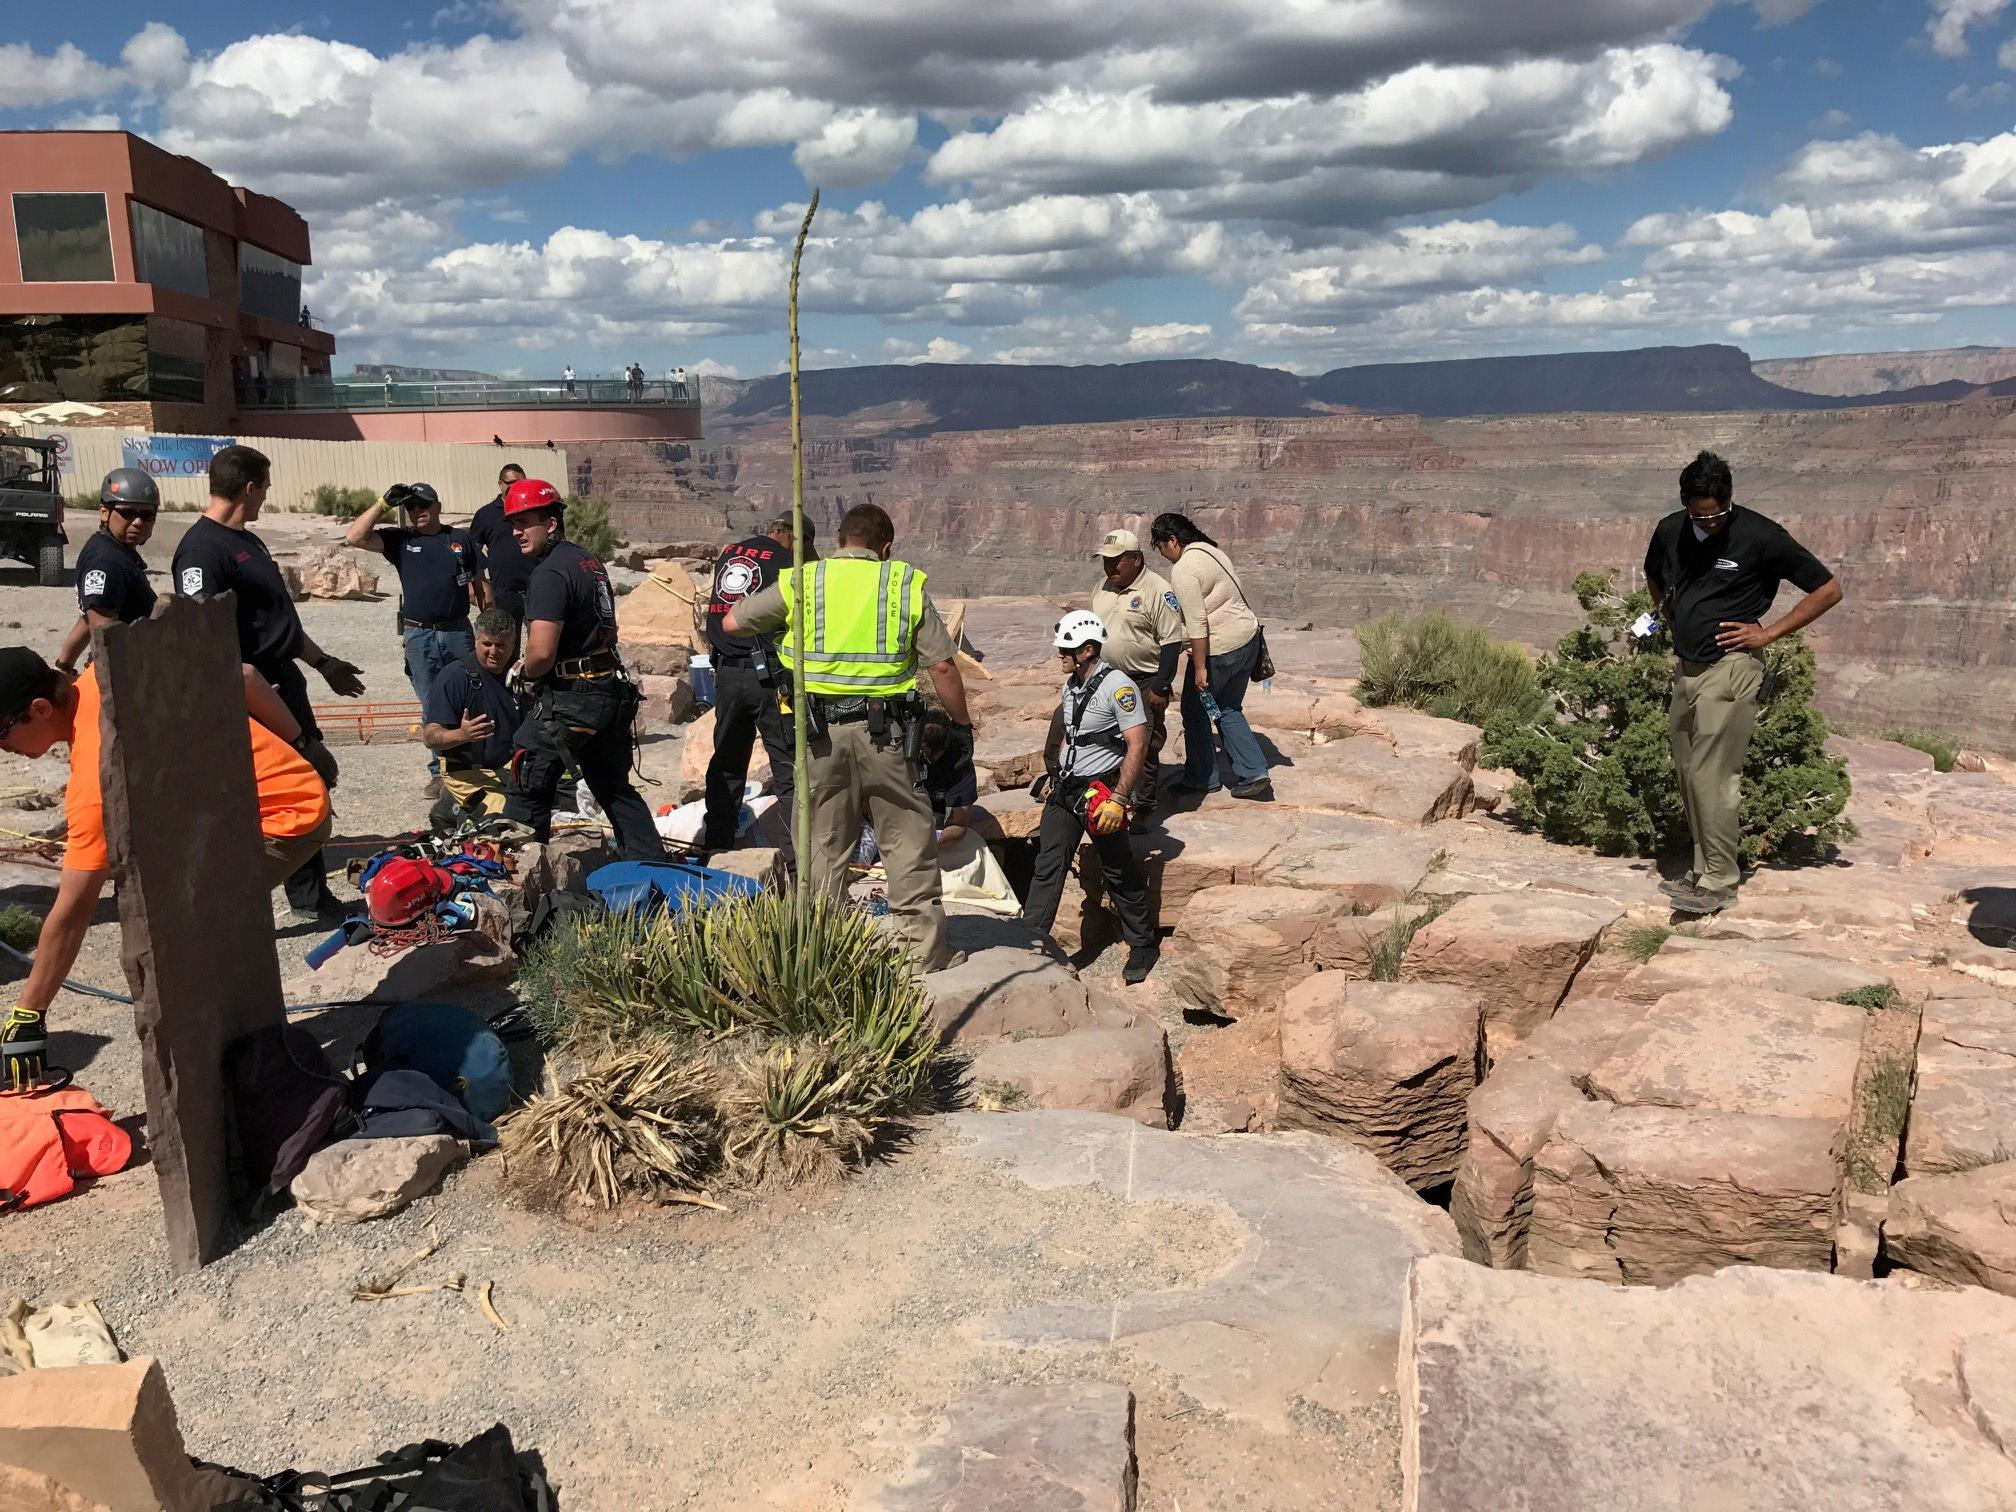 Mohave County Sheriff's Search and Rescue Units deploy a rope rescue Tuesday, April 18, 2017, at Grand Canyon West near the Skywalk. (Photo courtesy of Mohave County Sheriff's Office)